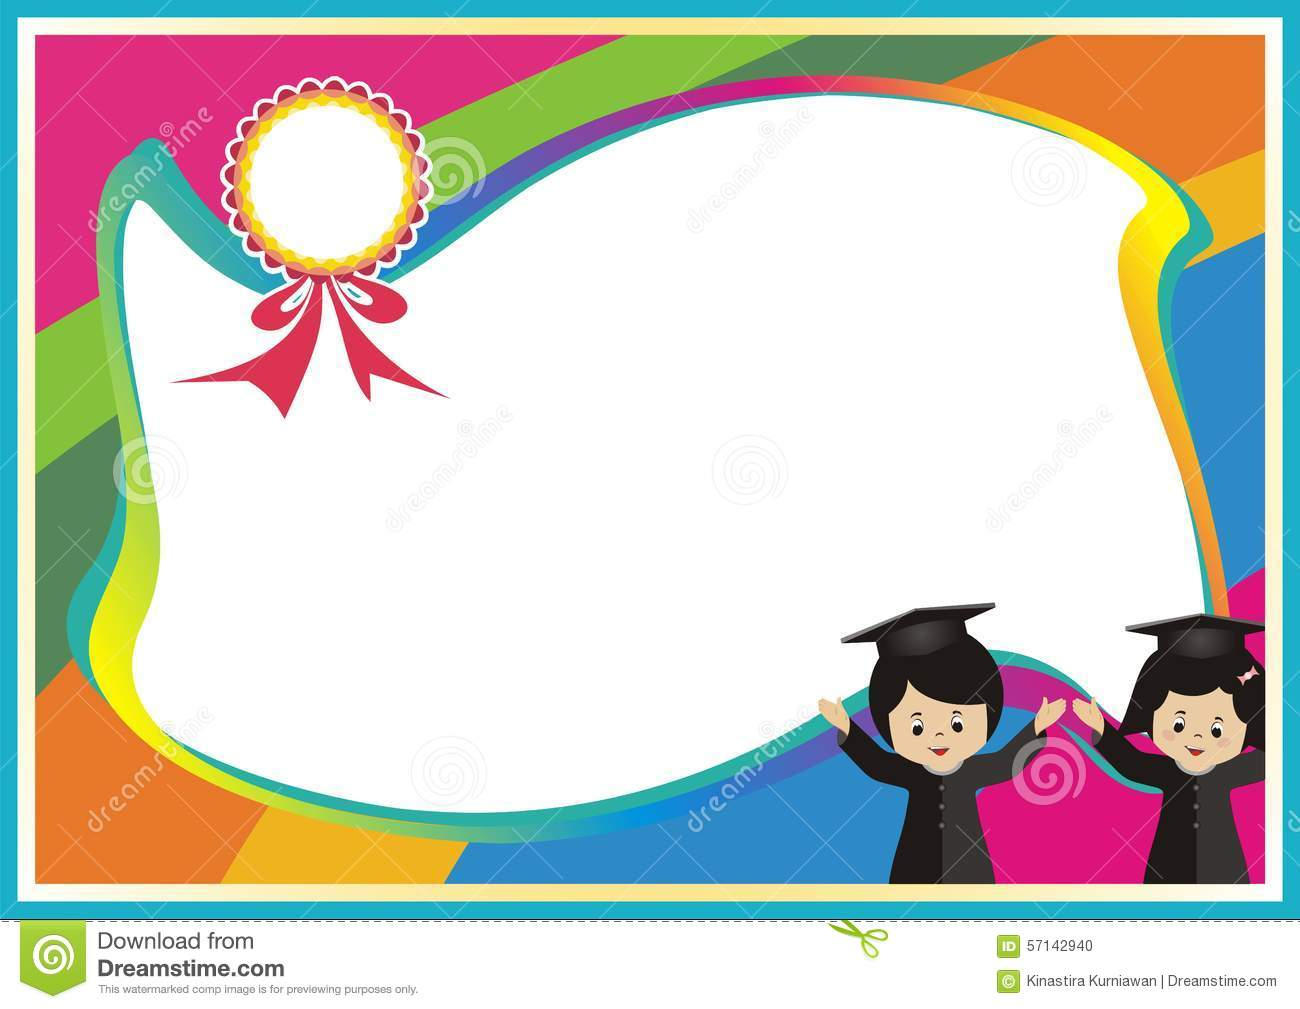 ... Photo: New Best colorful kid certificate Template. Image: 57142940